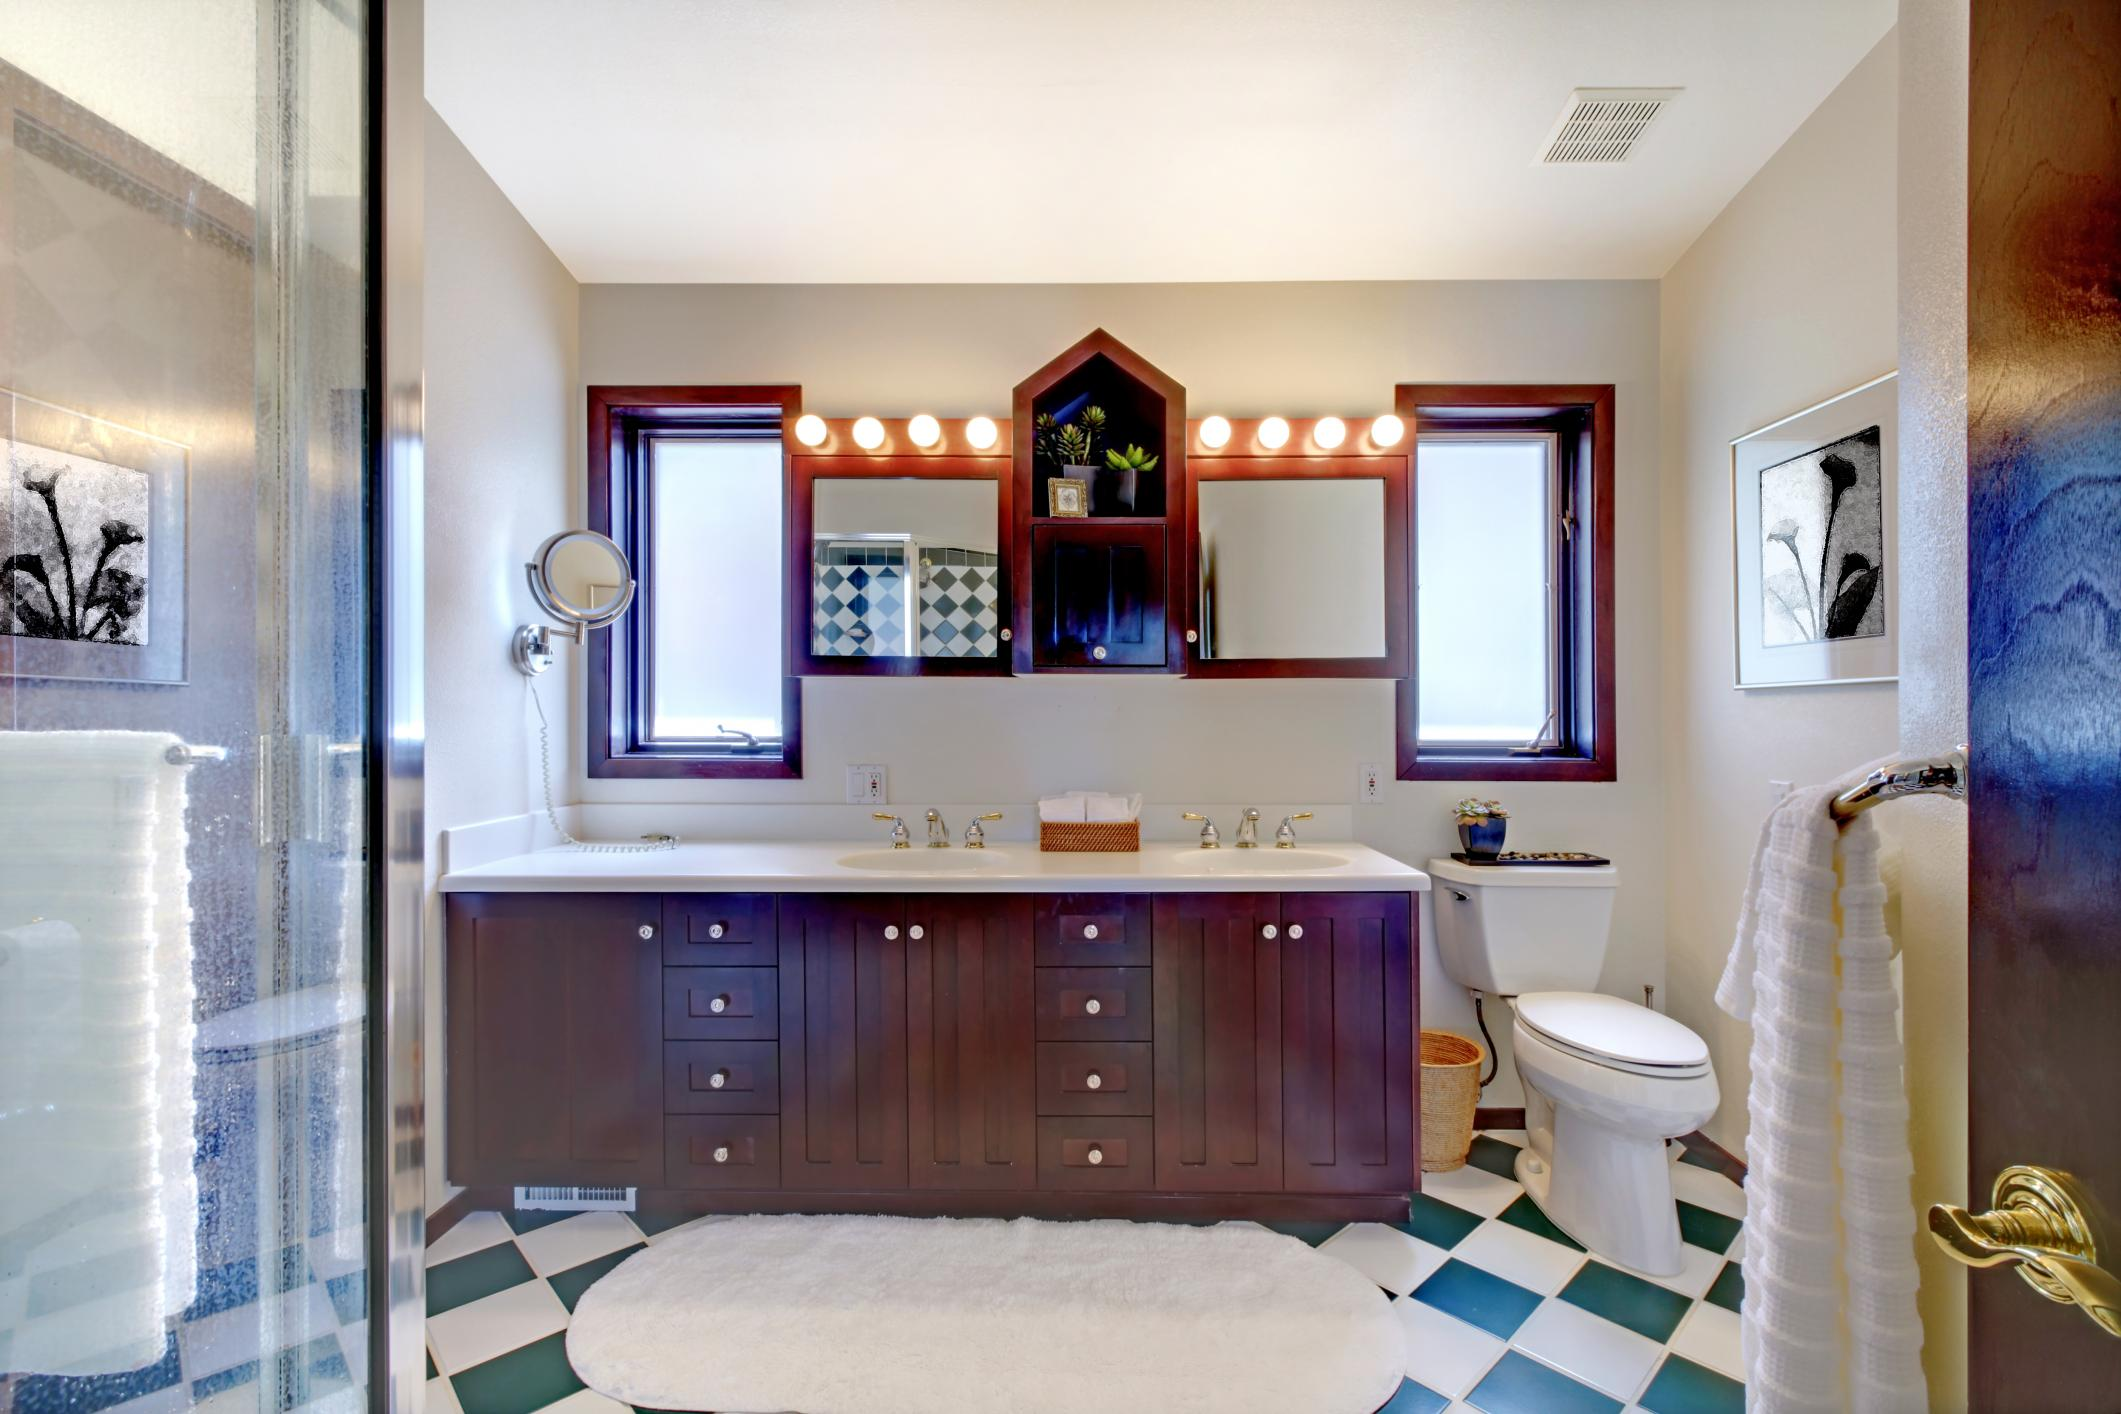 Spring Home Remodeling Contractor - Bathroom Remodeling 2